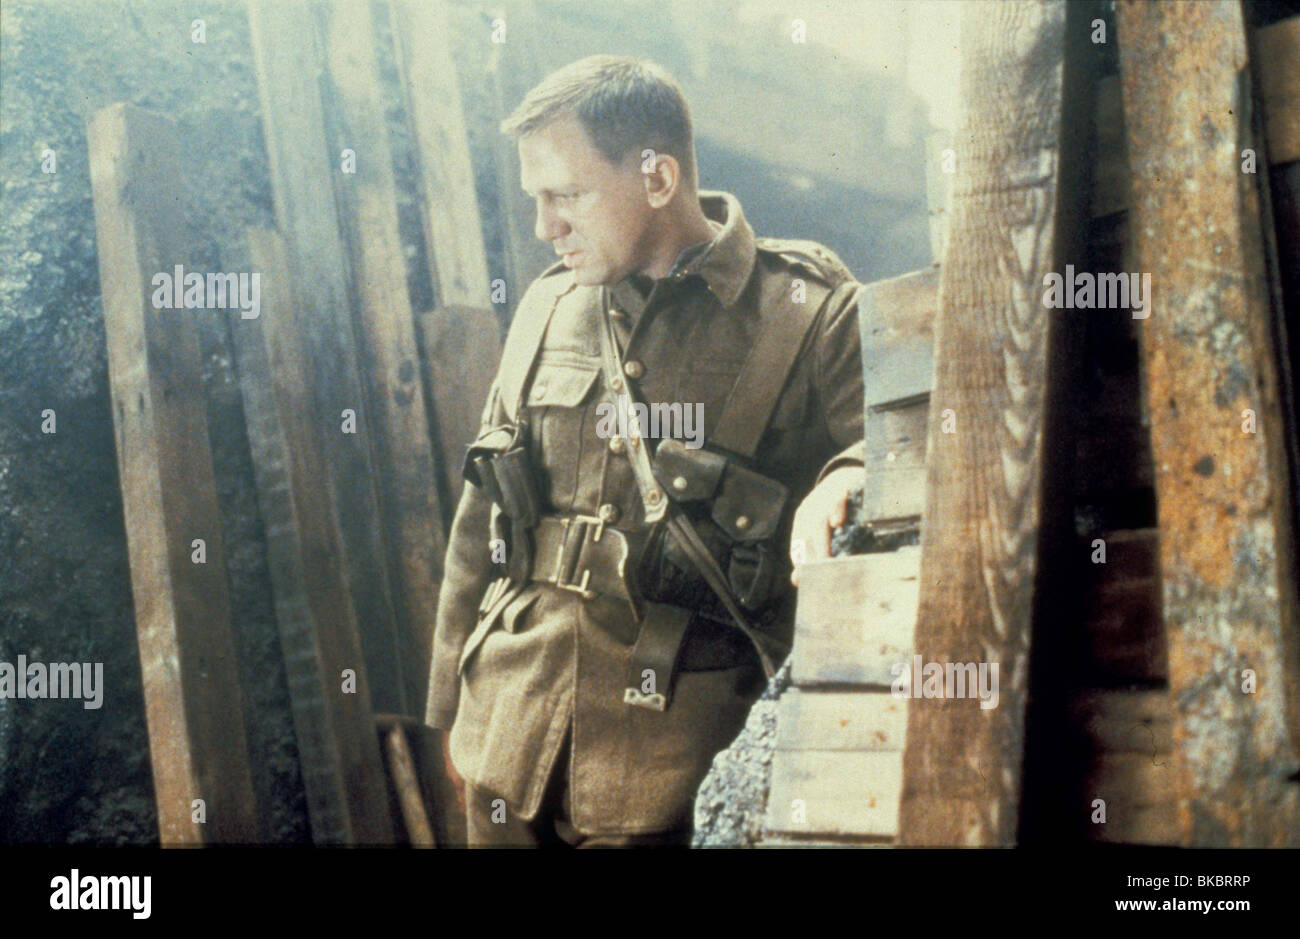 THE TRENCH(1999) DANIEL CRAIG - Stock Image